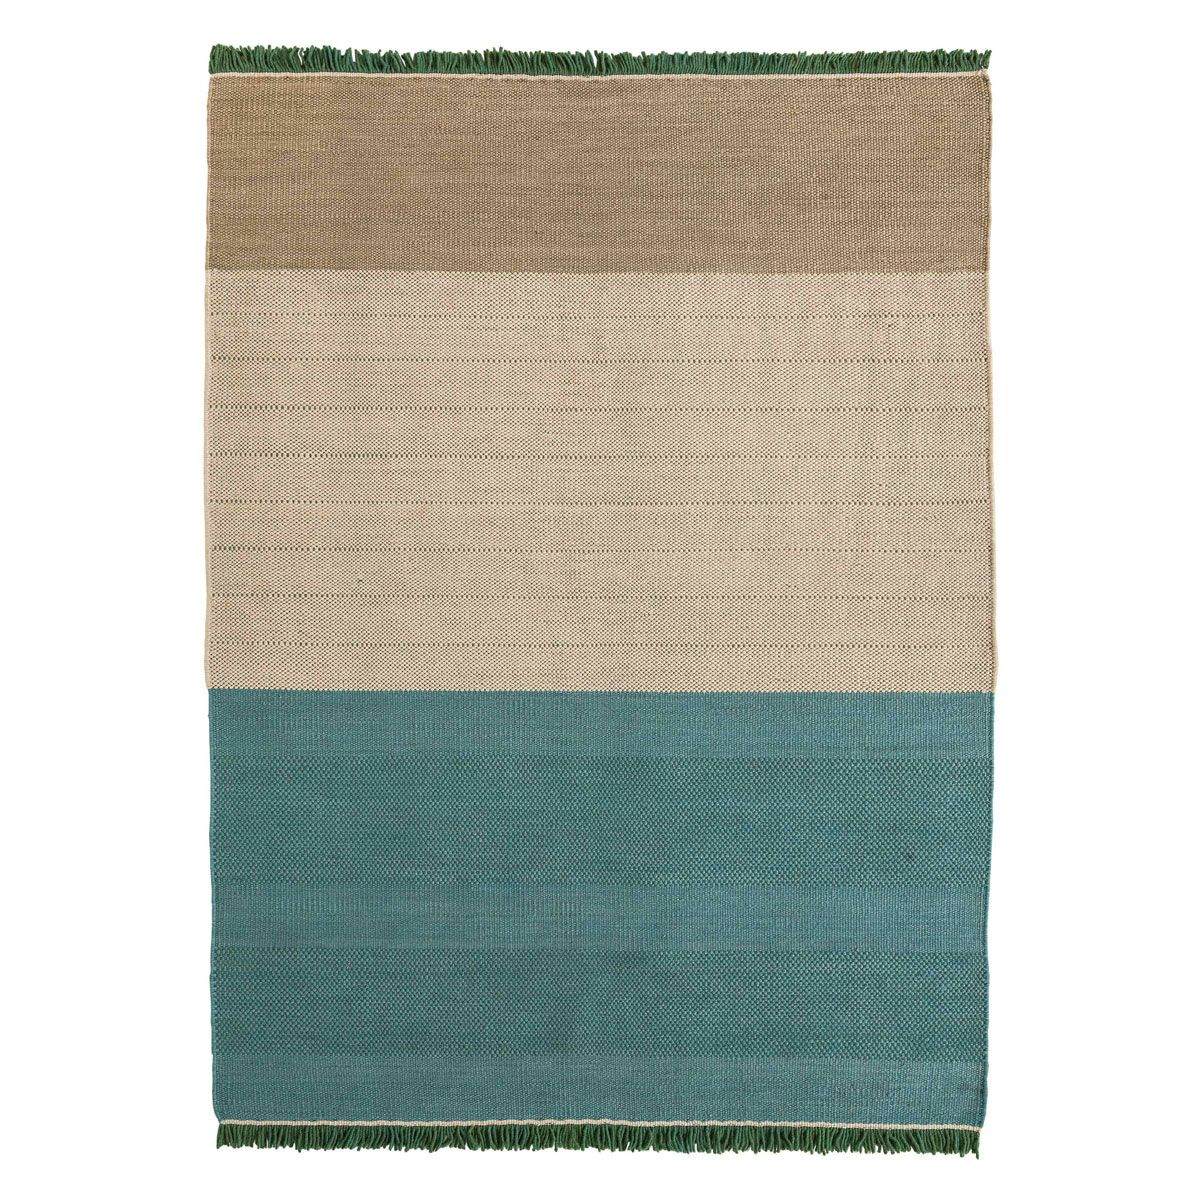 Tres Stripes Green Rug - Nanimarquina